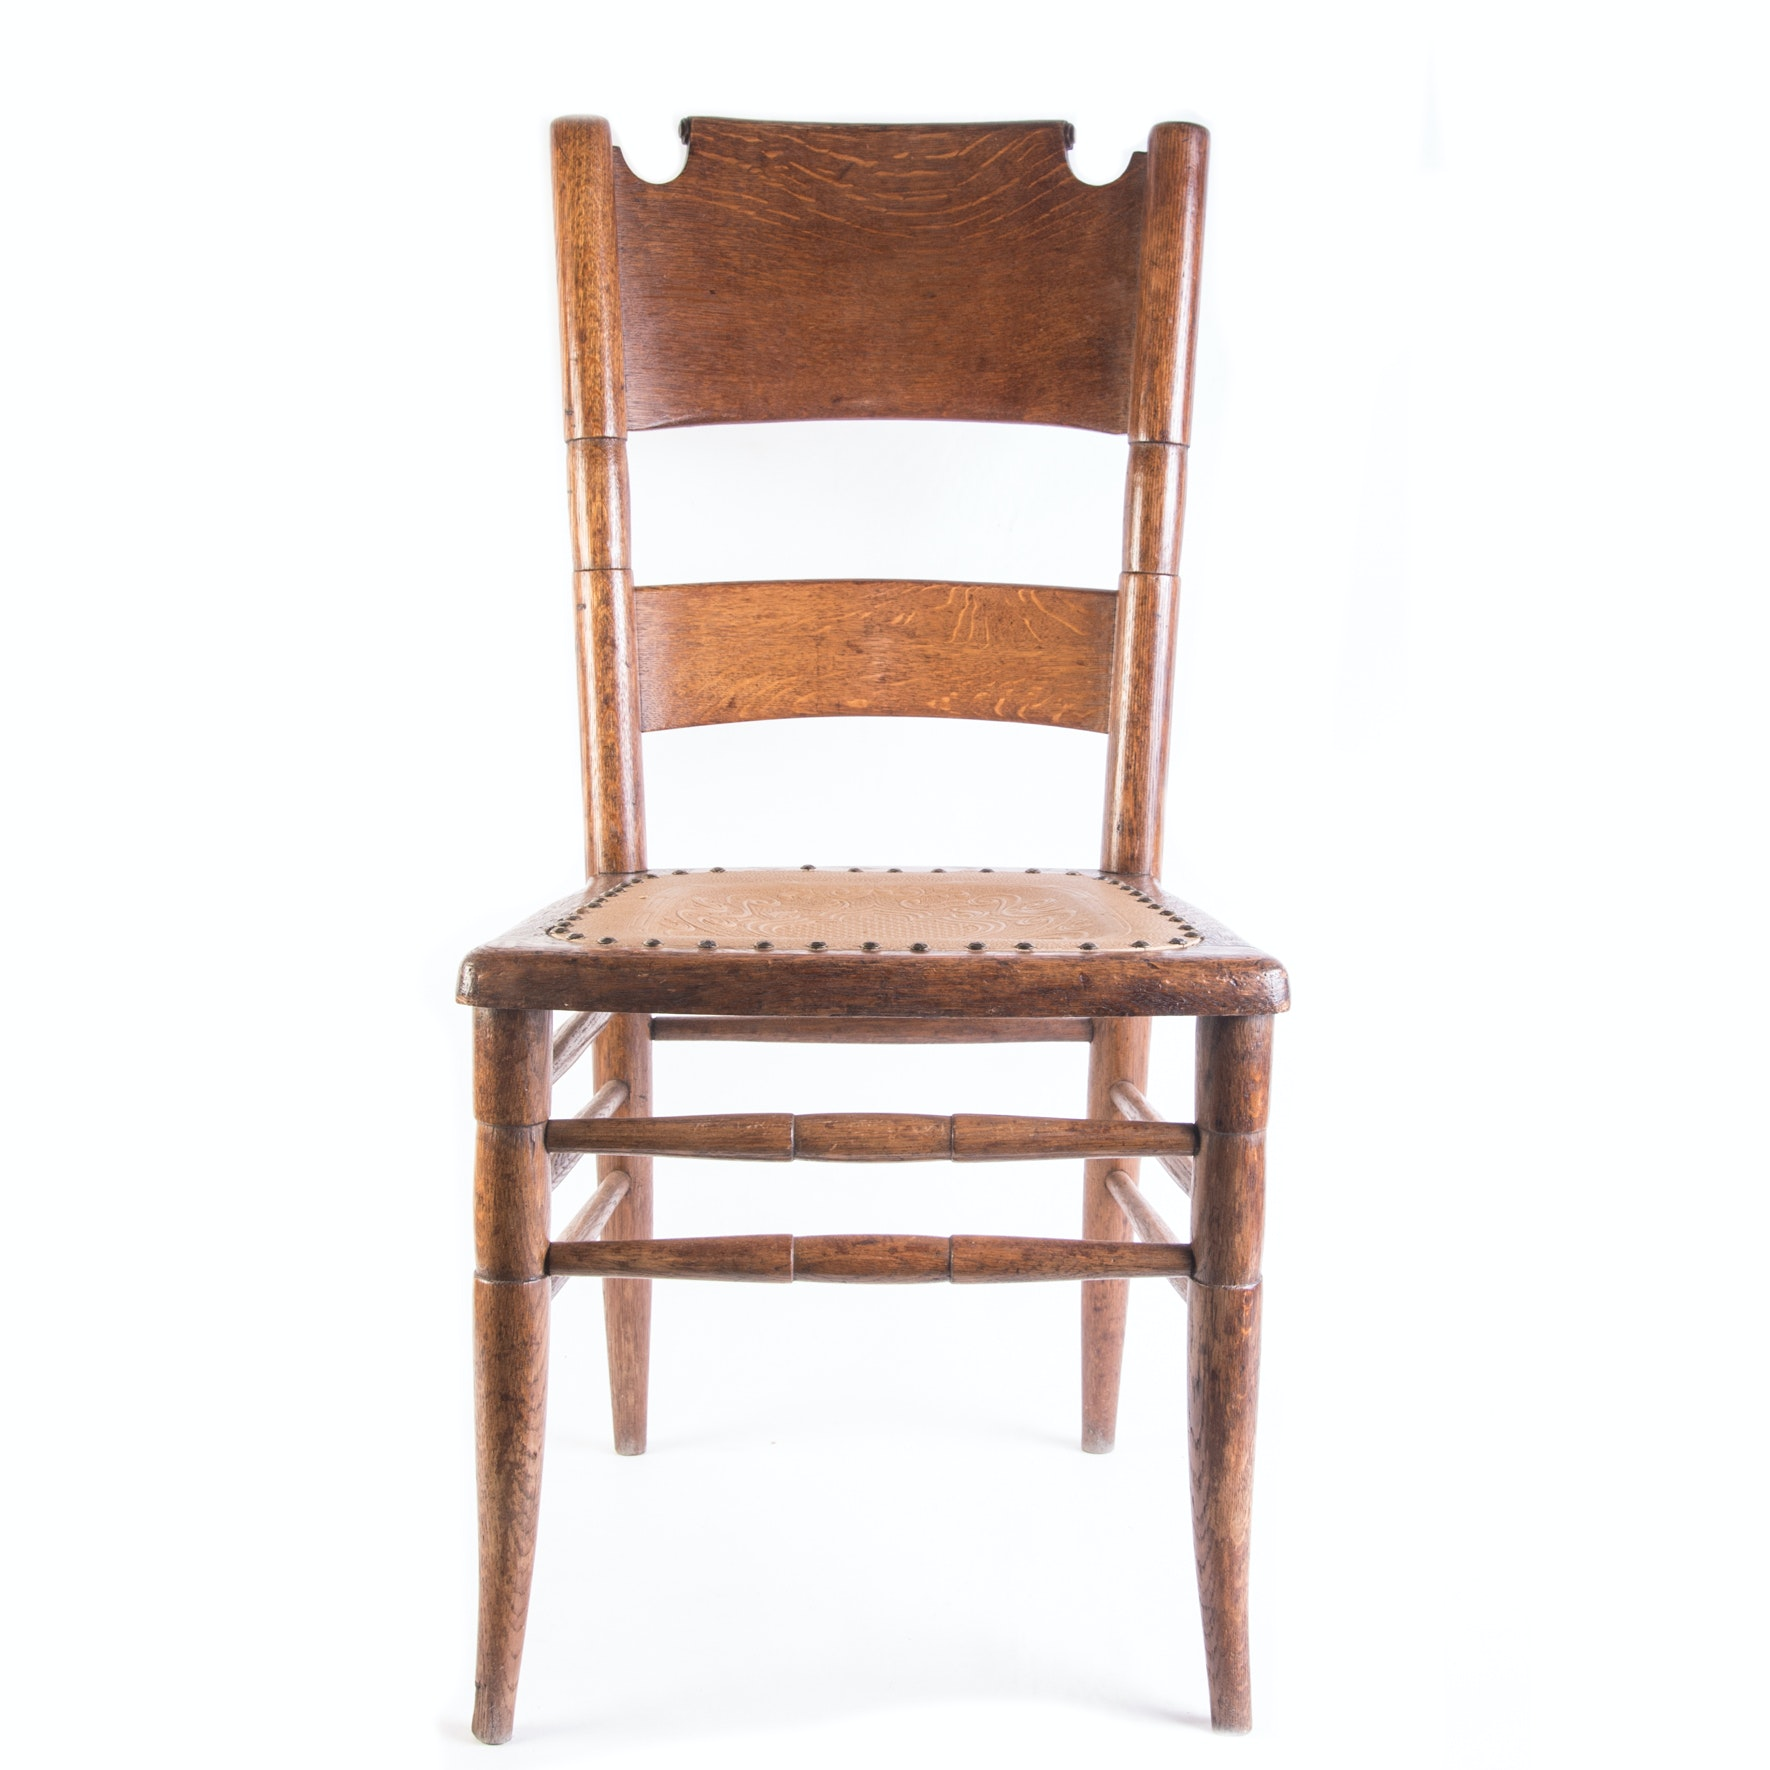 Vintage Side Chair with Tooled Leather Seat